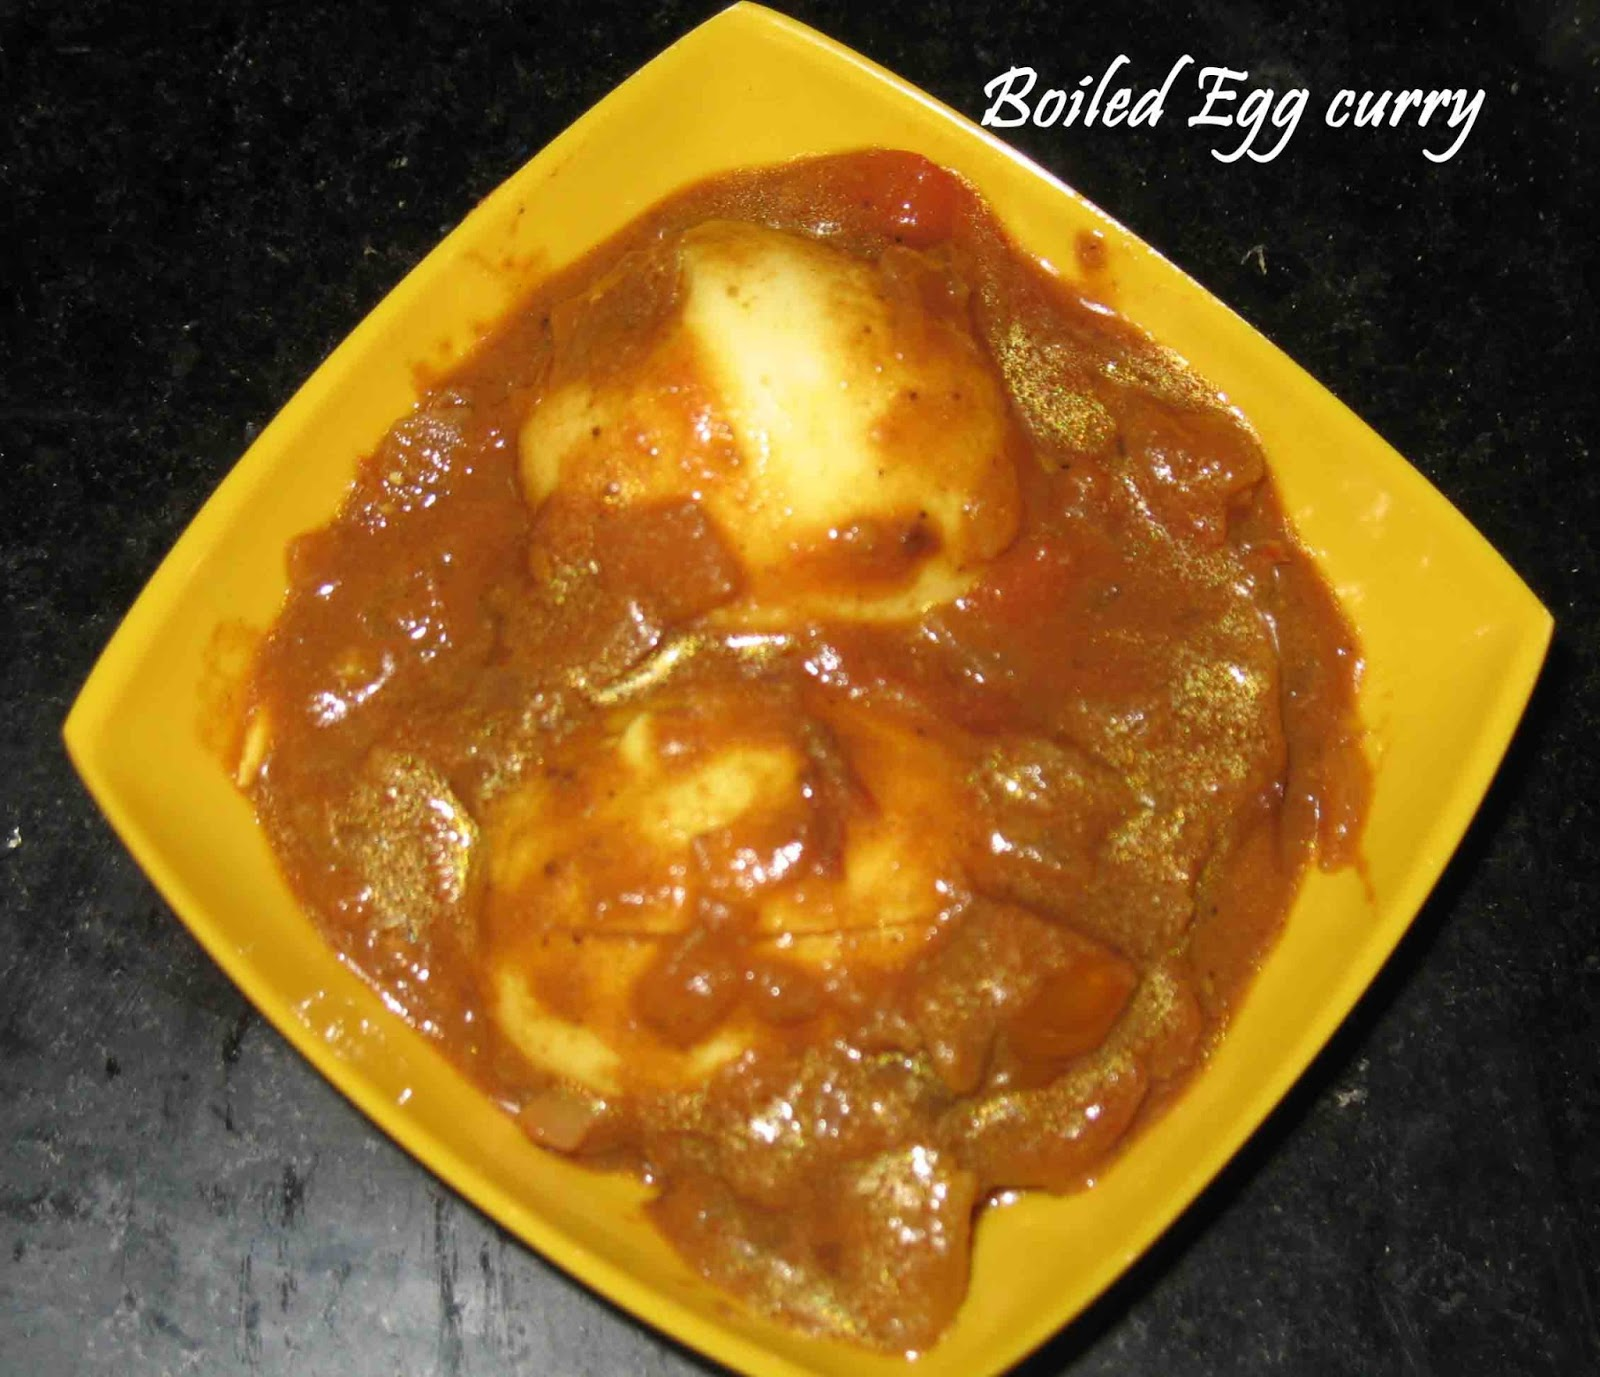 Boiled Egg curry